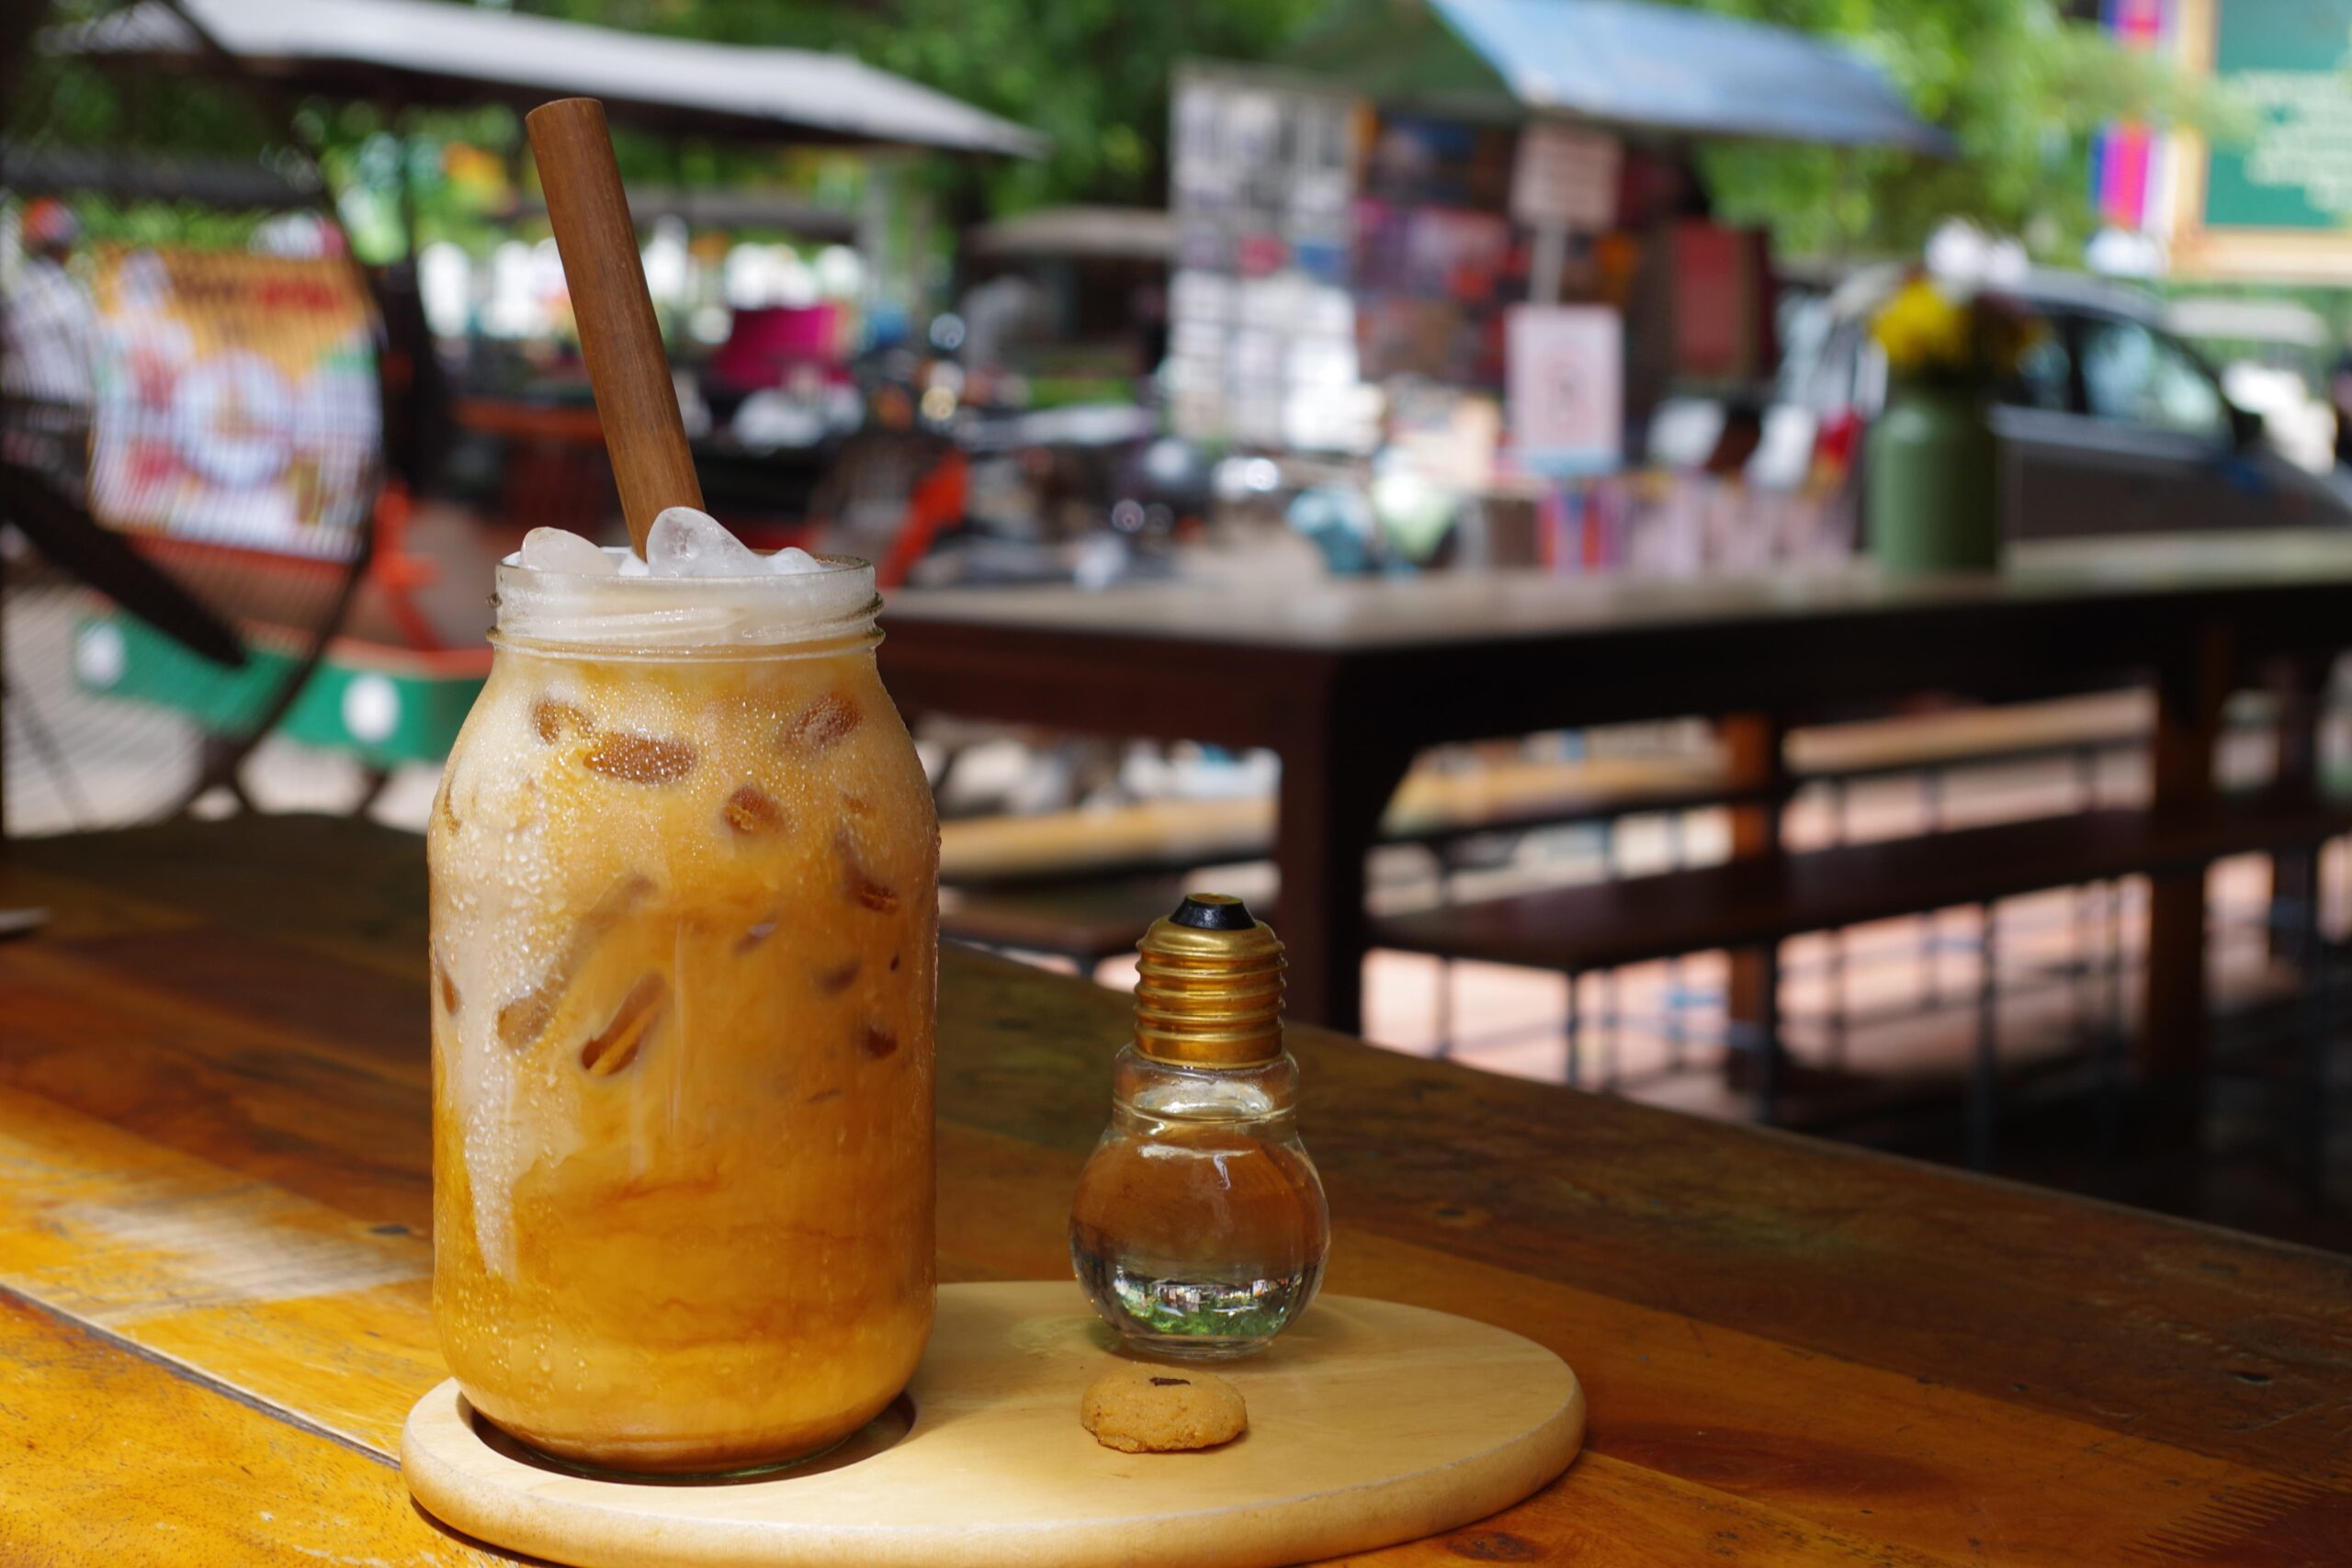 【Sister Srey Cafe】Using Local Organic Produce for Healthier Food